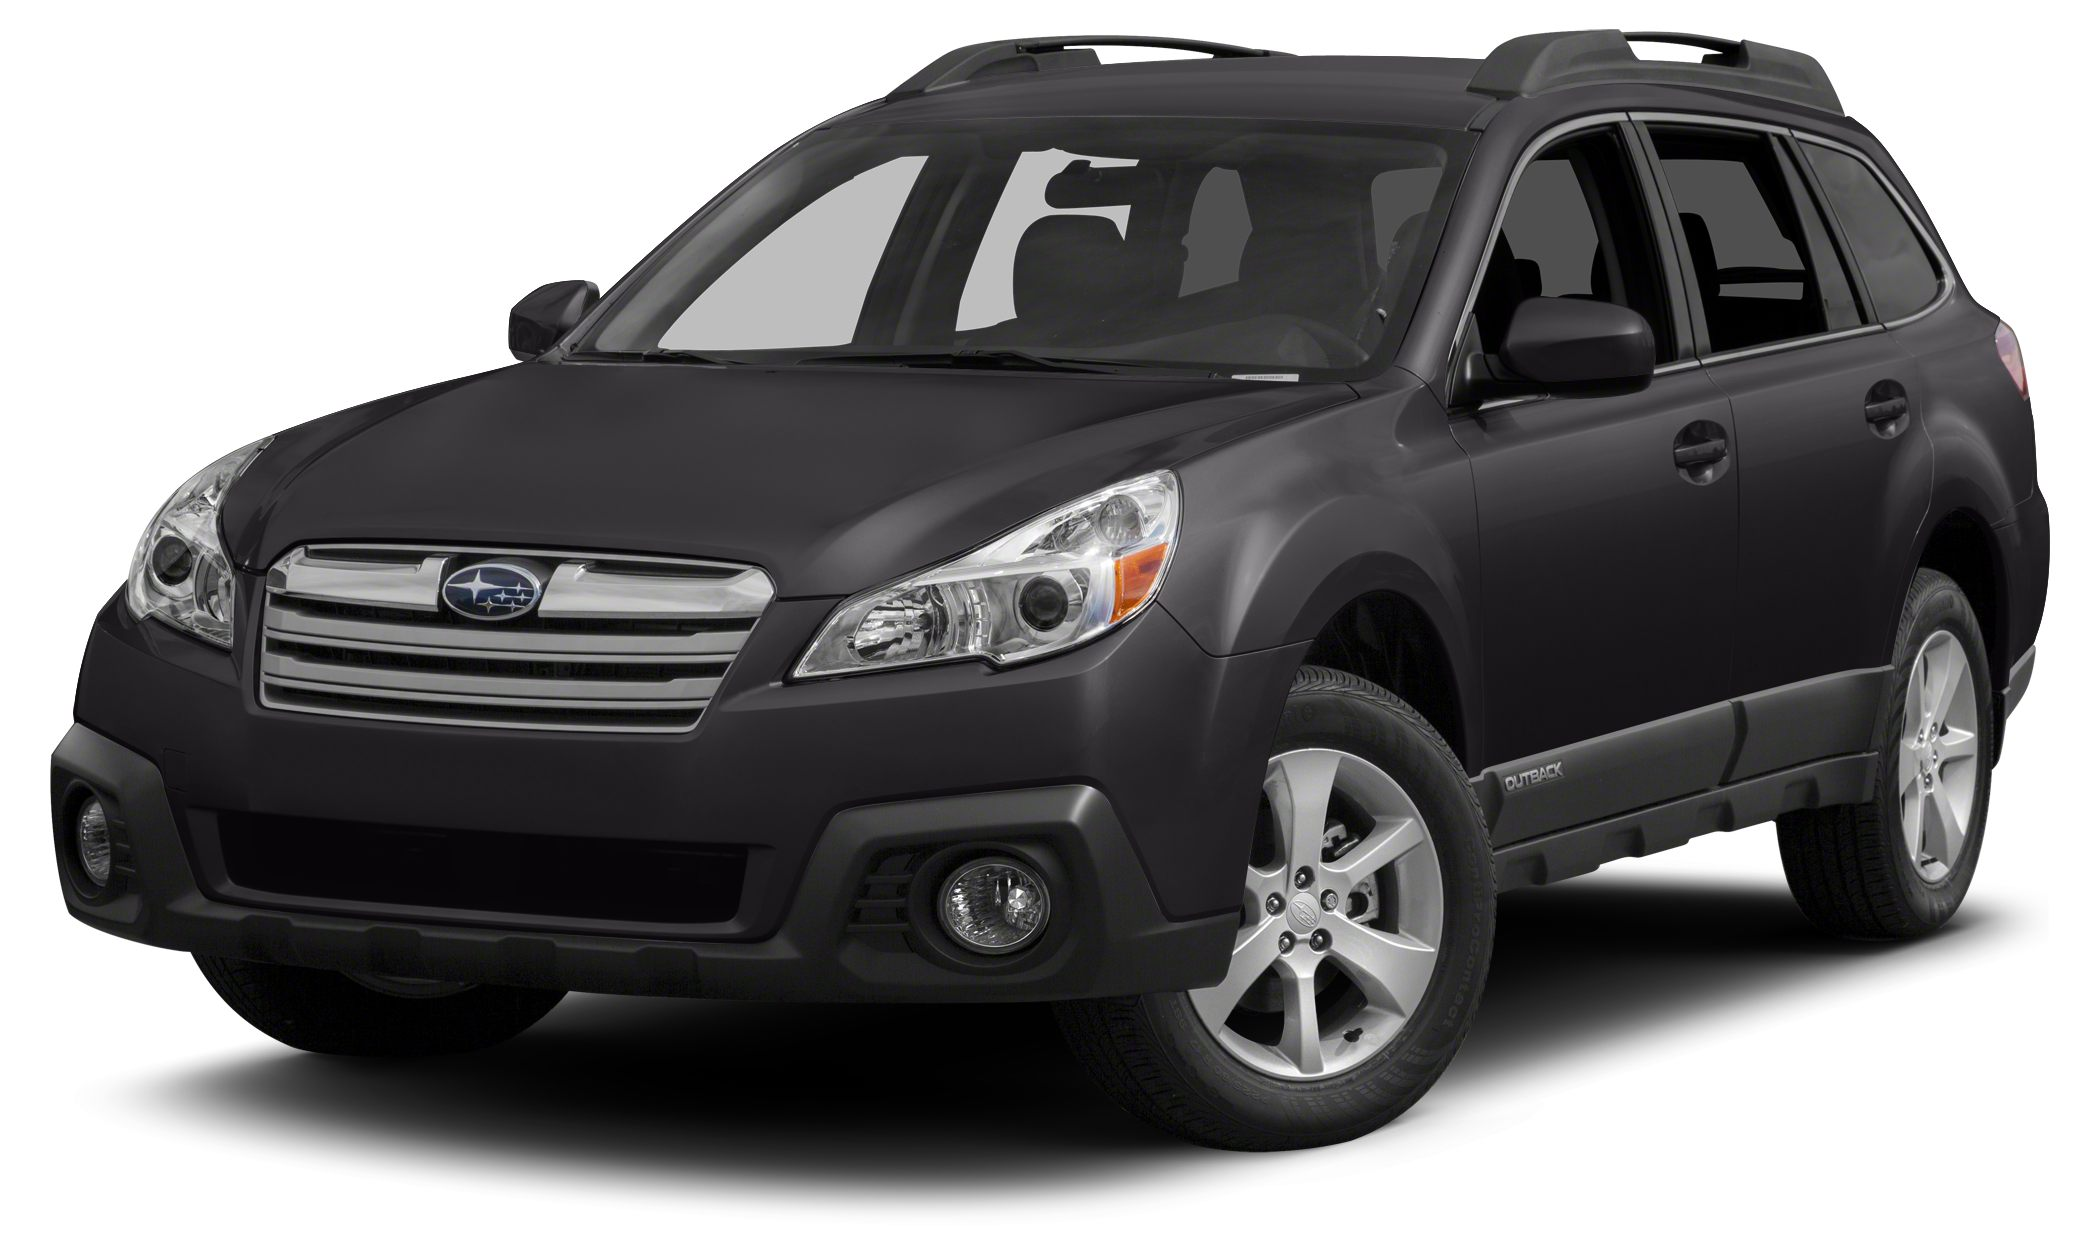 2013 Subaru Outback 25i Limited FUEL EFFICIENT 30 MPG Hwy24 MPG City CARFAX 1-Owner ONLY 2902